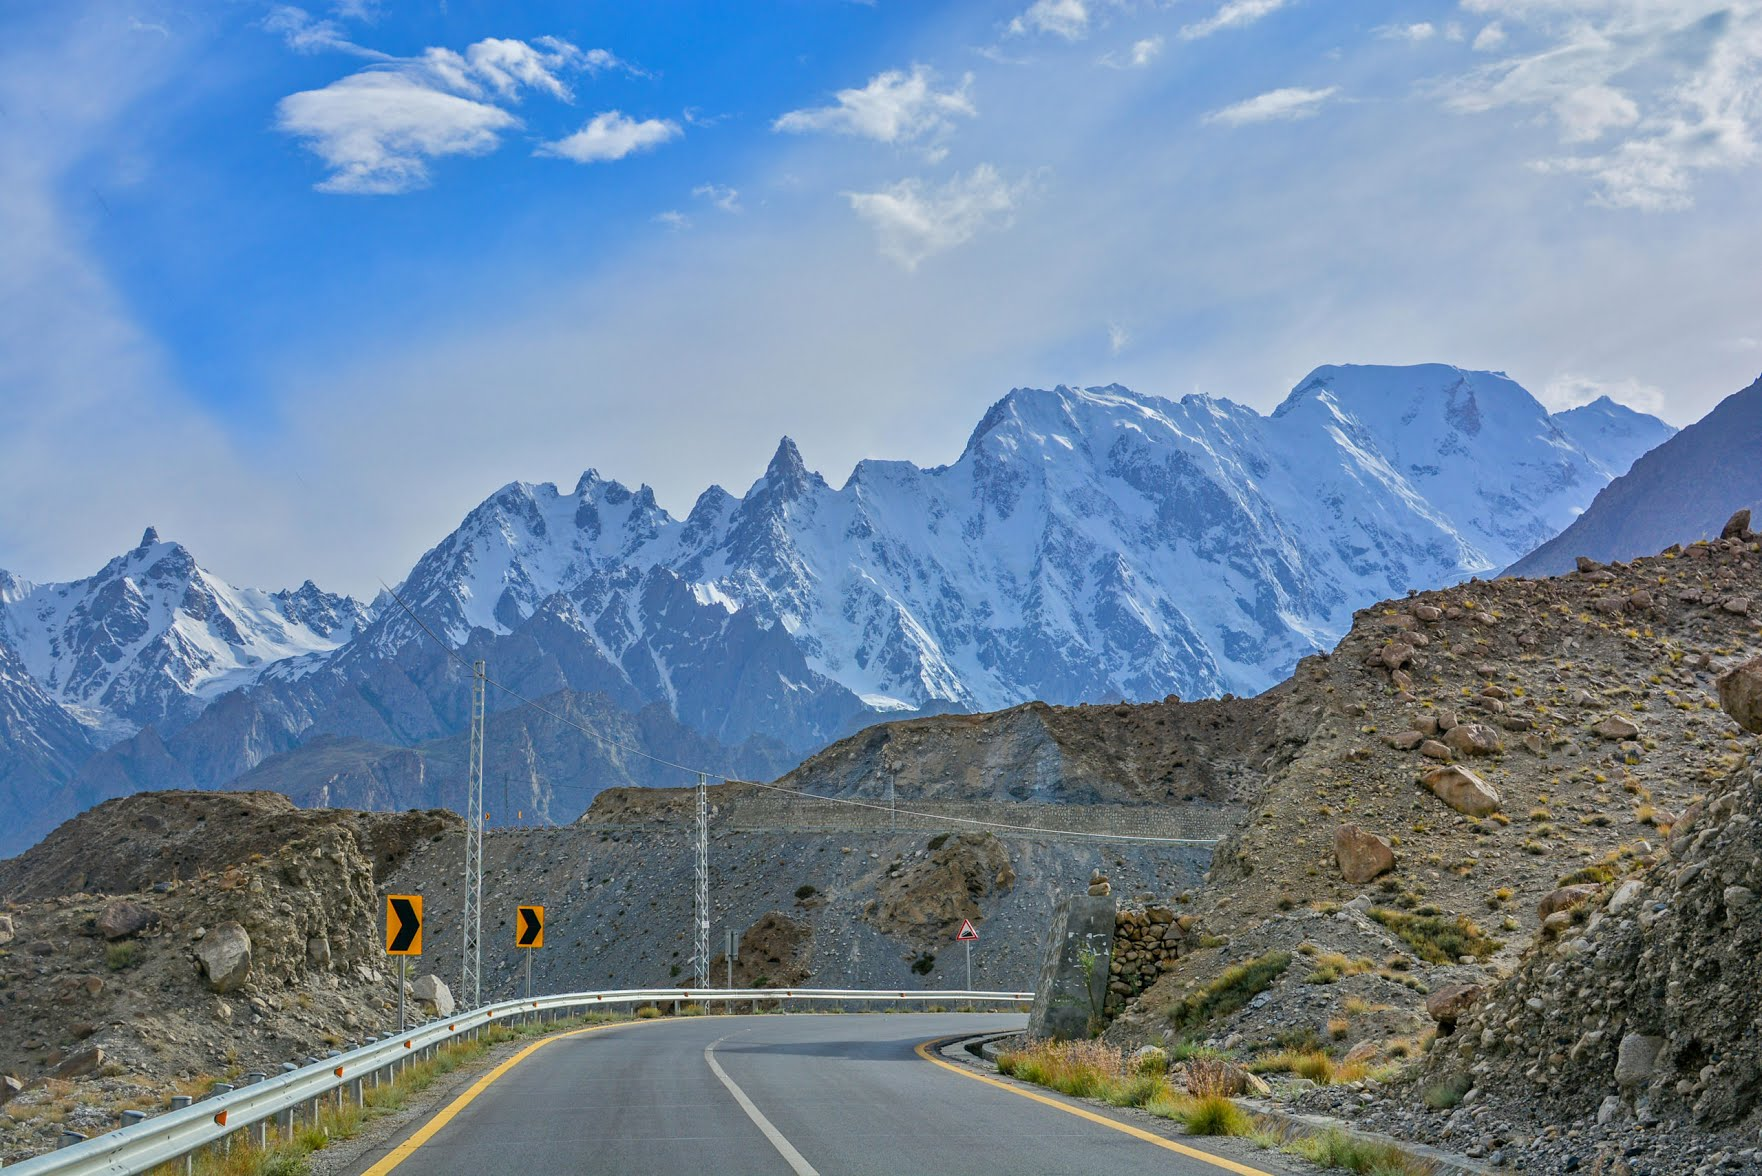 Nearly 7,000 trucks will pass through Pakistan's northern provinces daily, releasing millions of tonnes of carbon dioxide on their way to Gwadar in the south. This makes it all the more important for stakeholders to put the environment and local communities at the heart of all CPEC development. (Image: Ali Mir/Alamy)